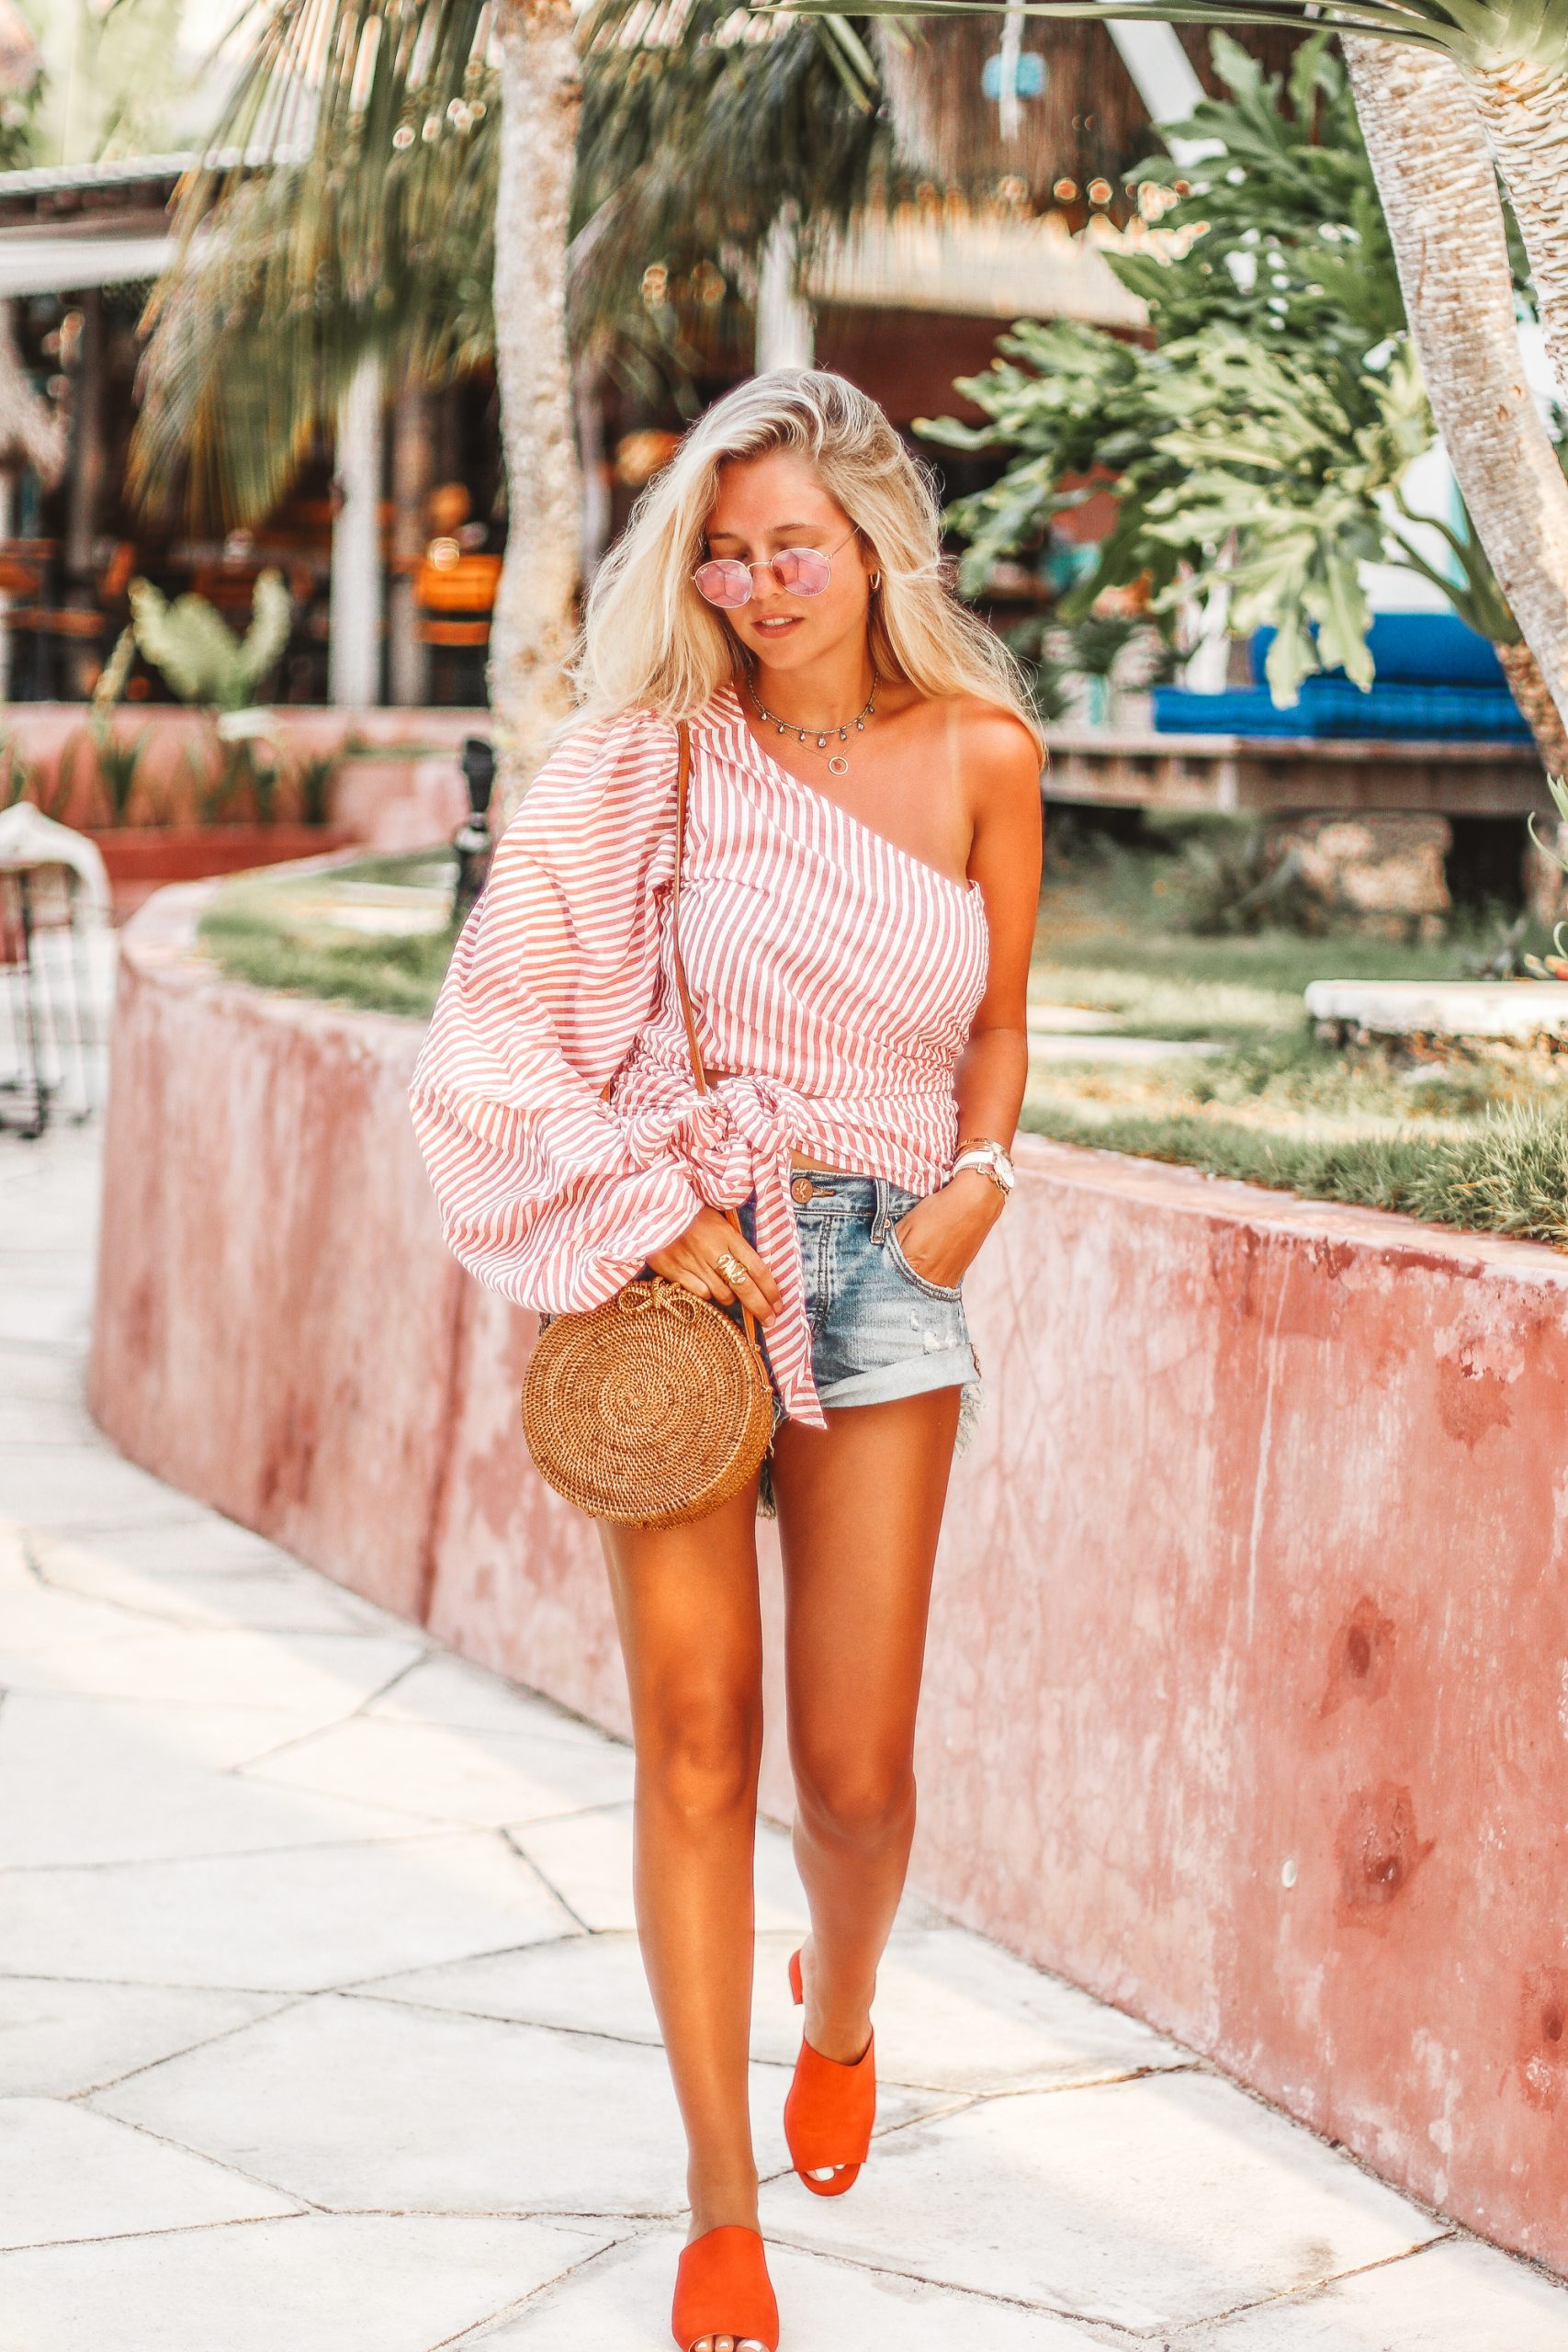 L'Académie asymetric top from Revolve clothing // One Teaspoon shorts // Summer outfit in Bali